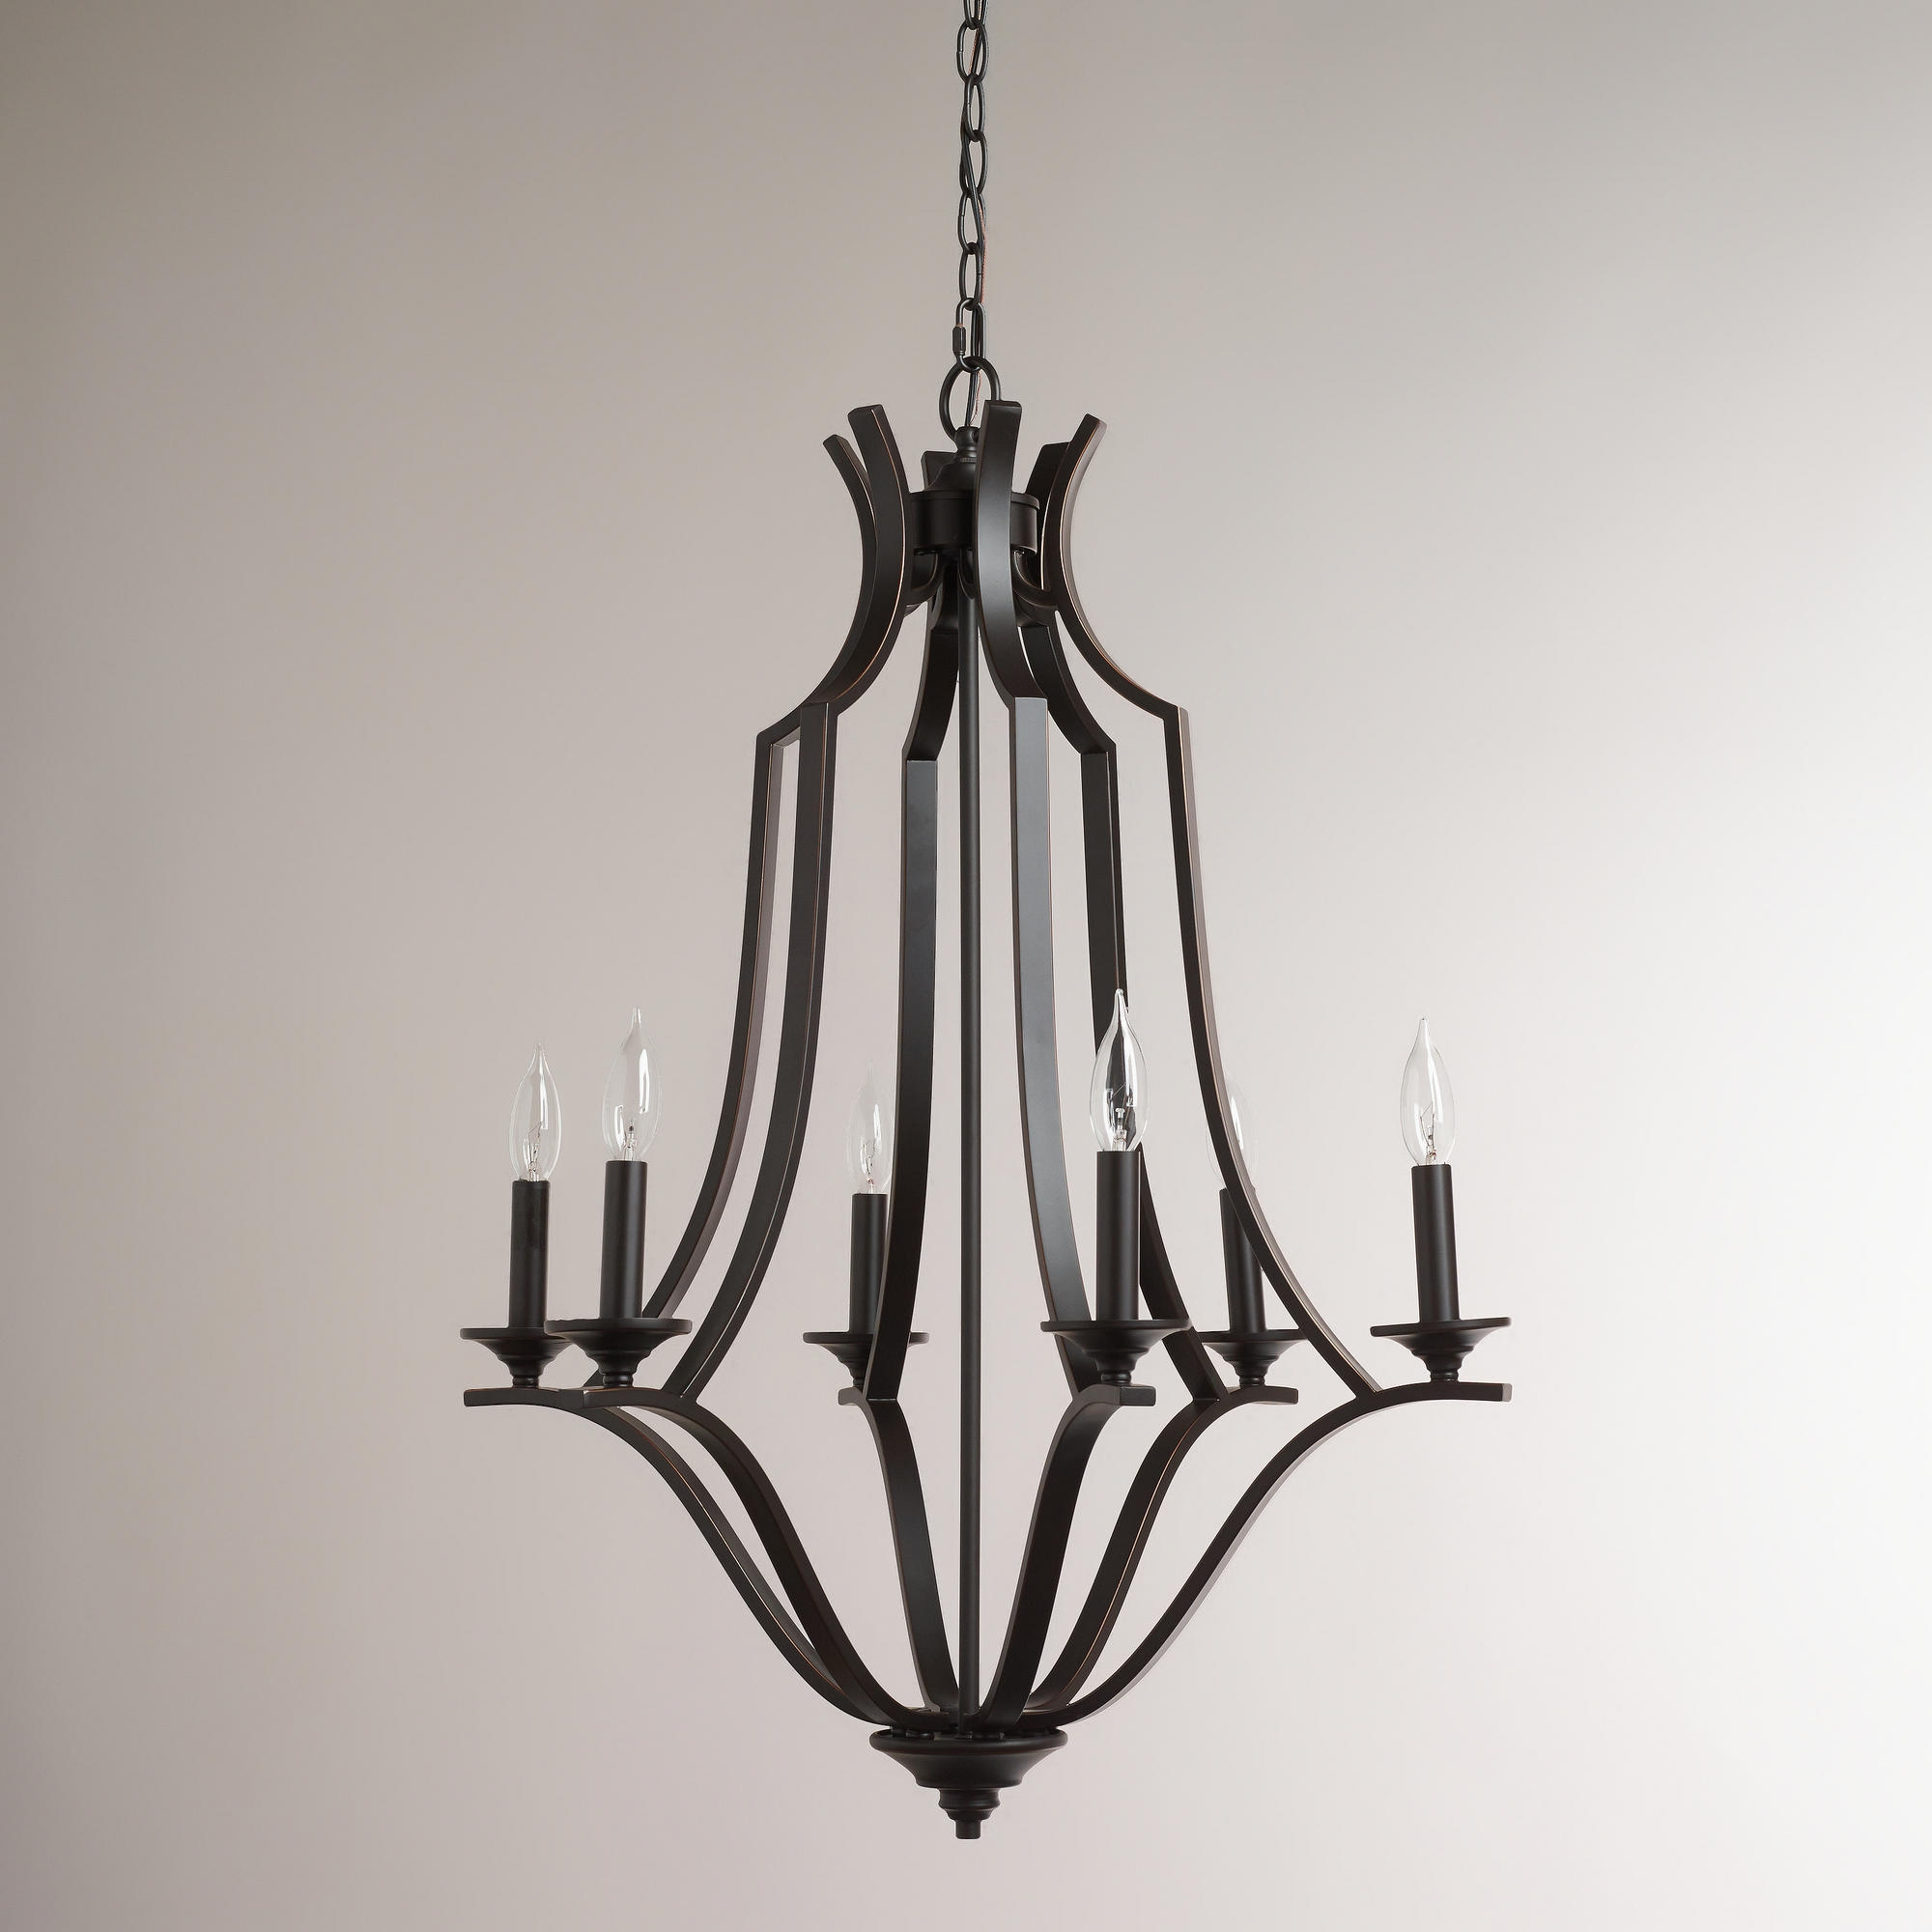 Online Shopping World Market Rardon Designrardon Design Within Large Iron Chandeliers (#10 of 12)